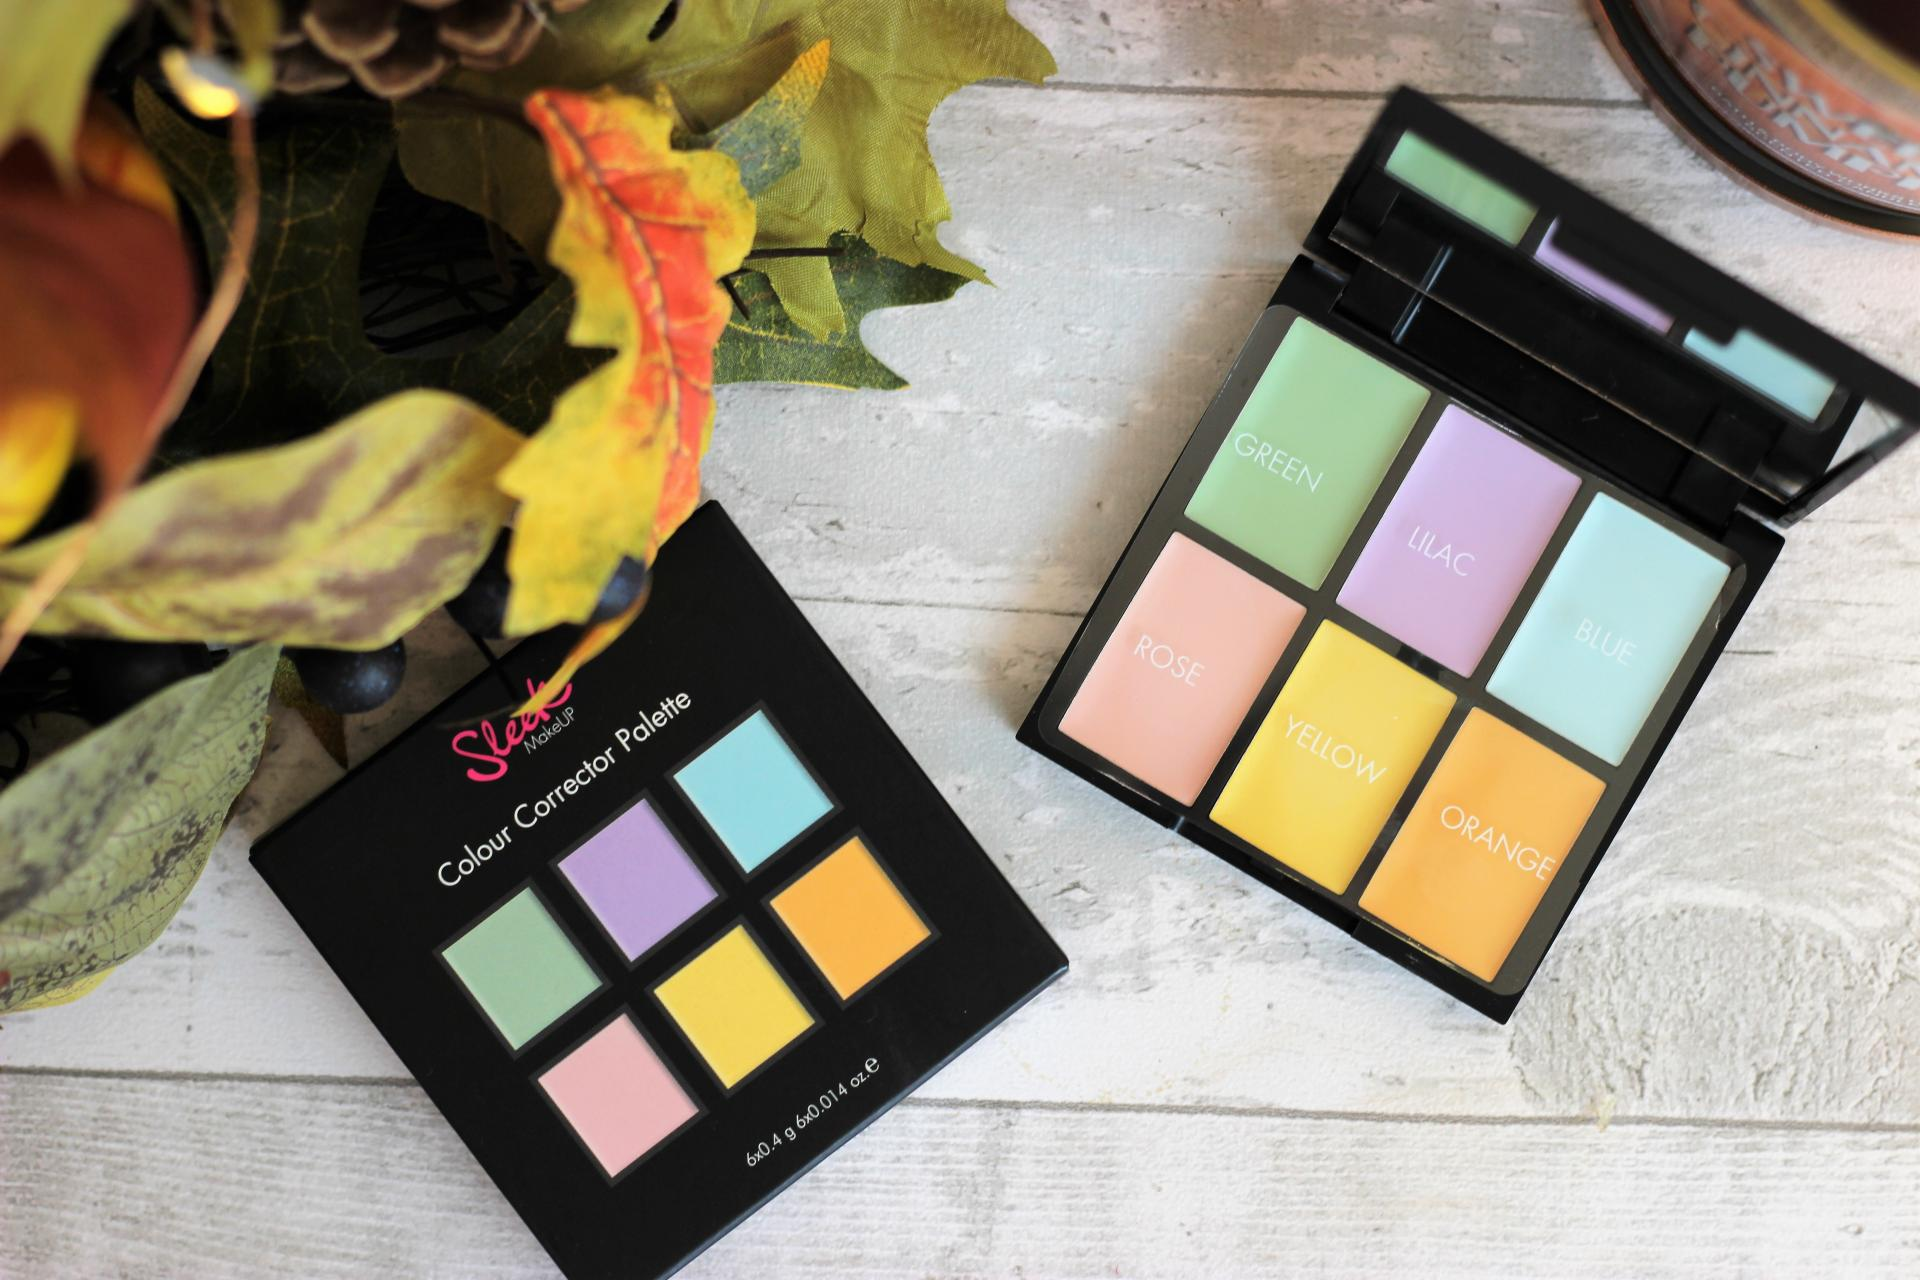 Colour Correcting and Contouring Sleek Iconic London Rodial